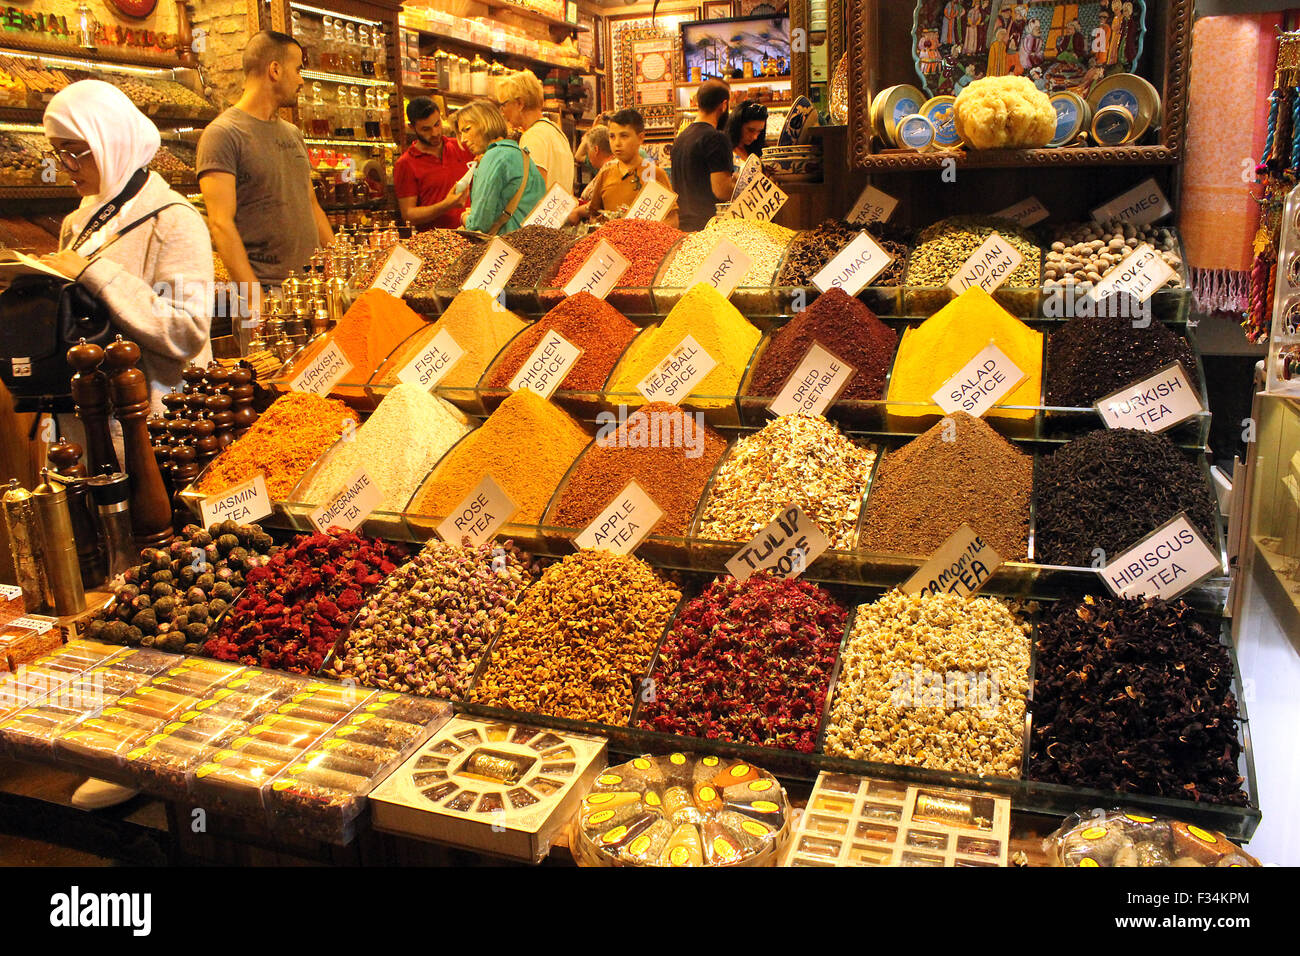 Spice shop at the Spice Bazaar in Istanbul, selective focus Stock Photo